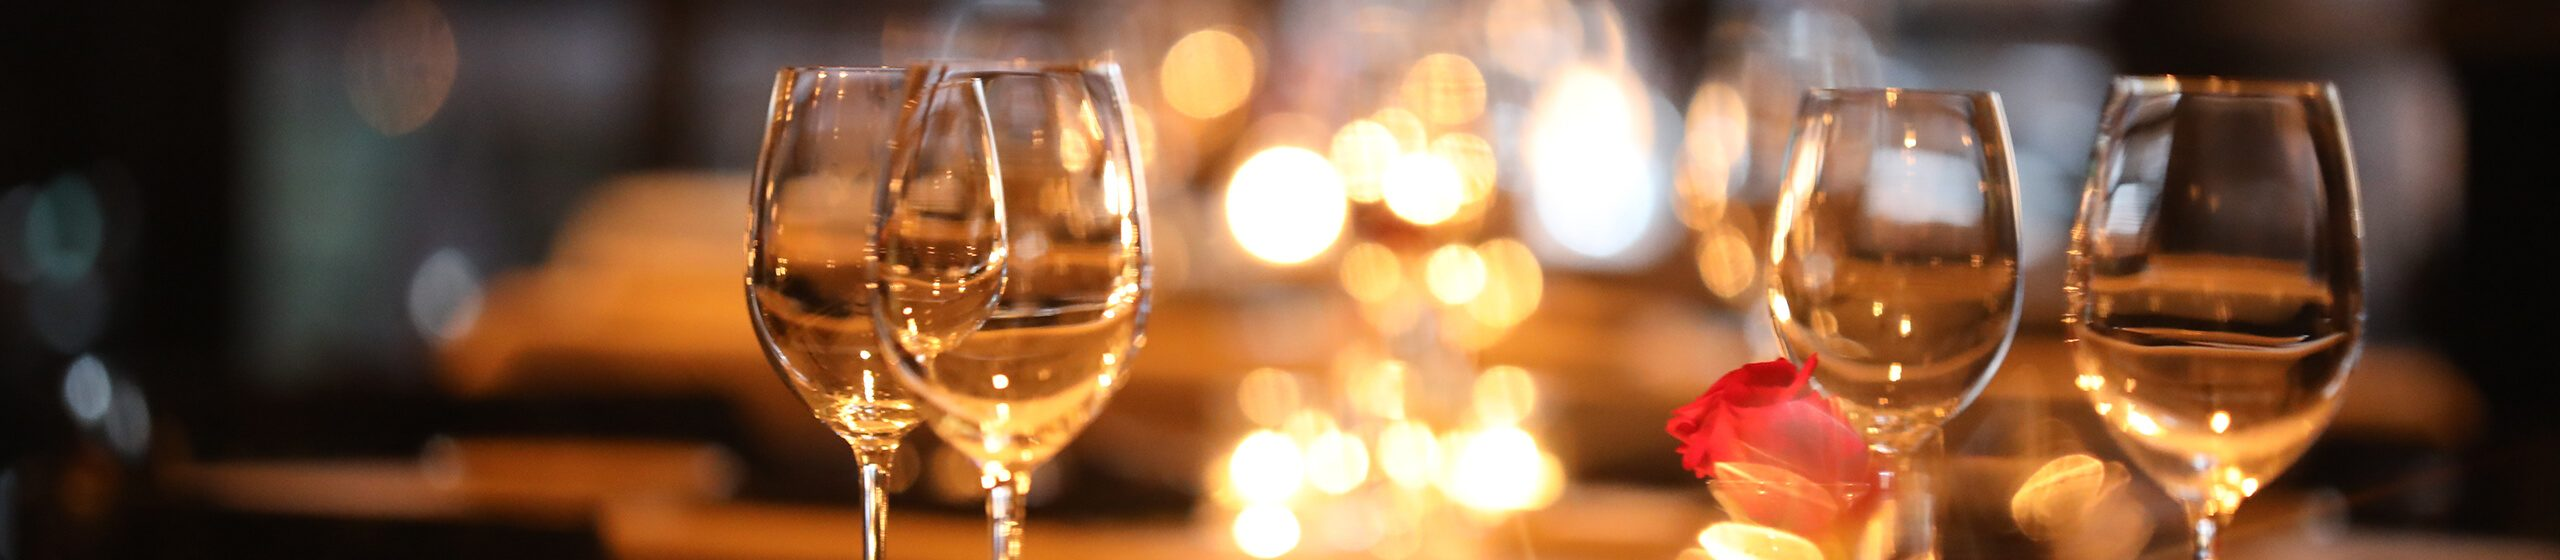 Silvester Speciale Wein